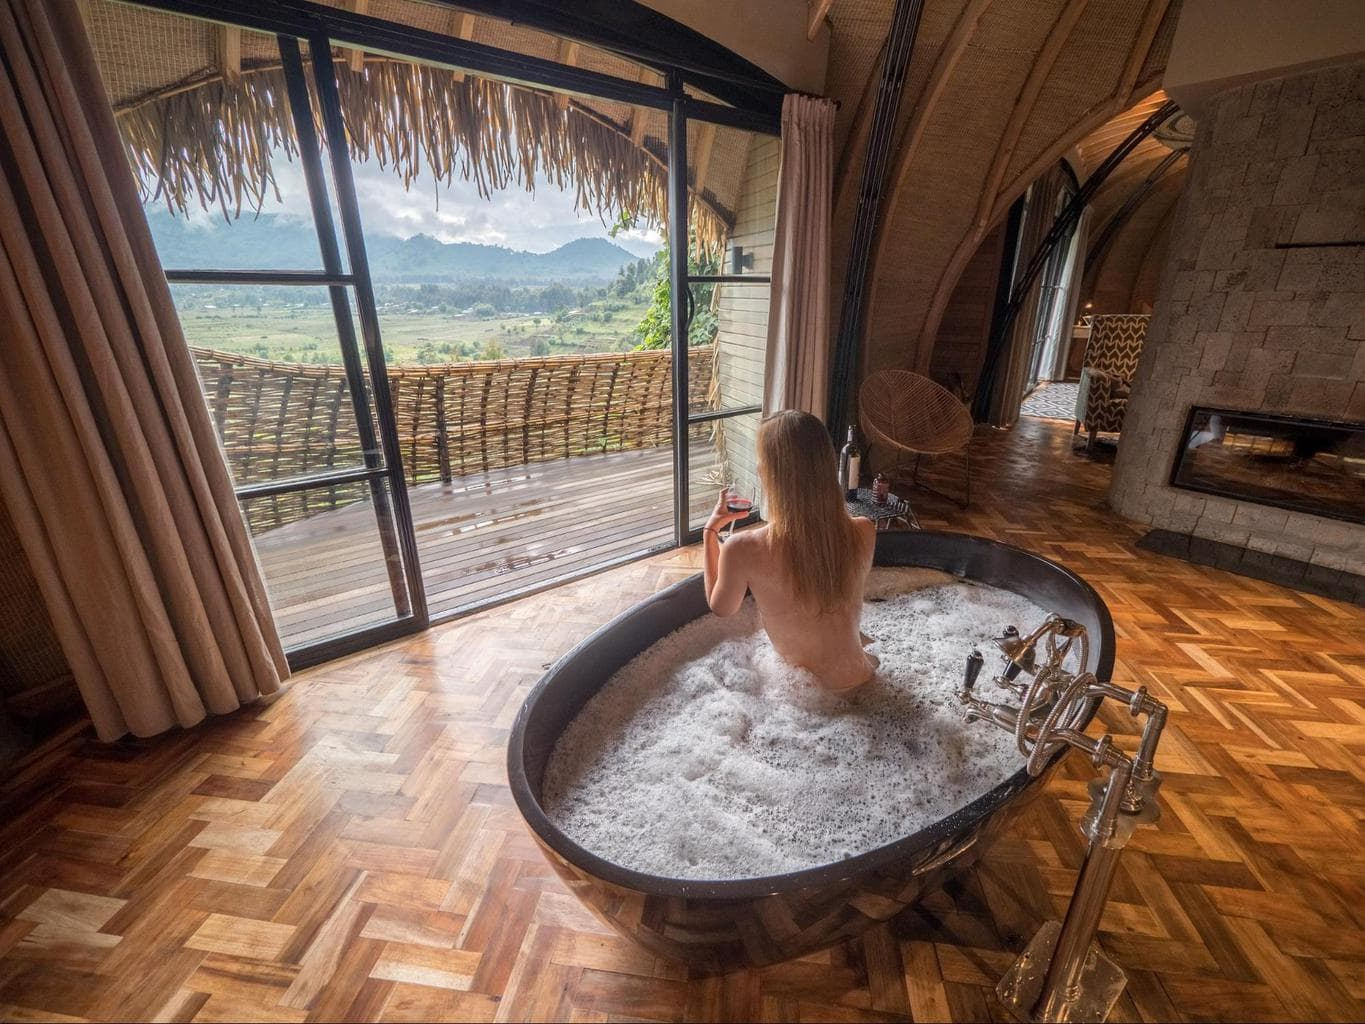 Soaking in the hot bathtub with a glass of wine while it's cold outside at Bisate Lodge